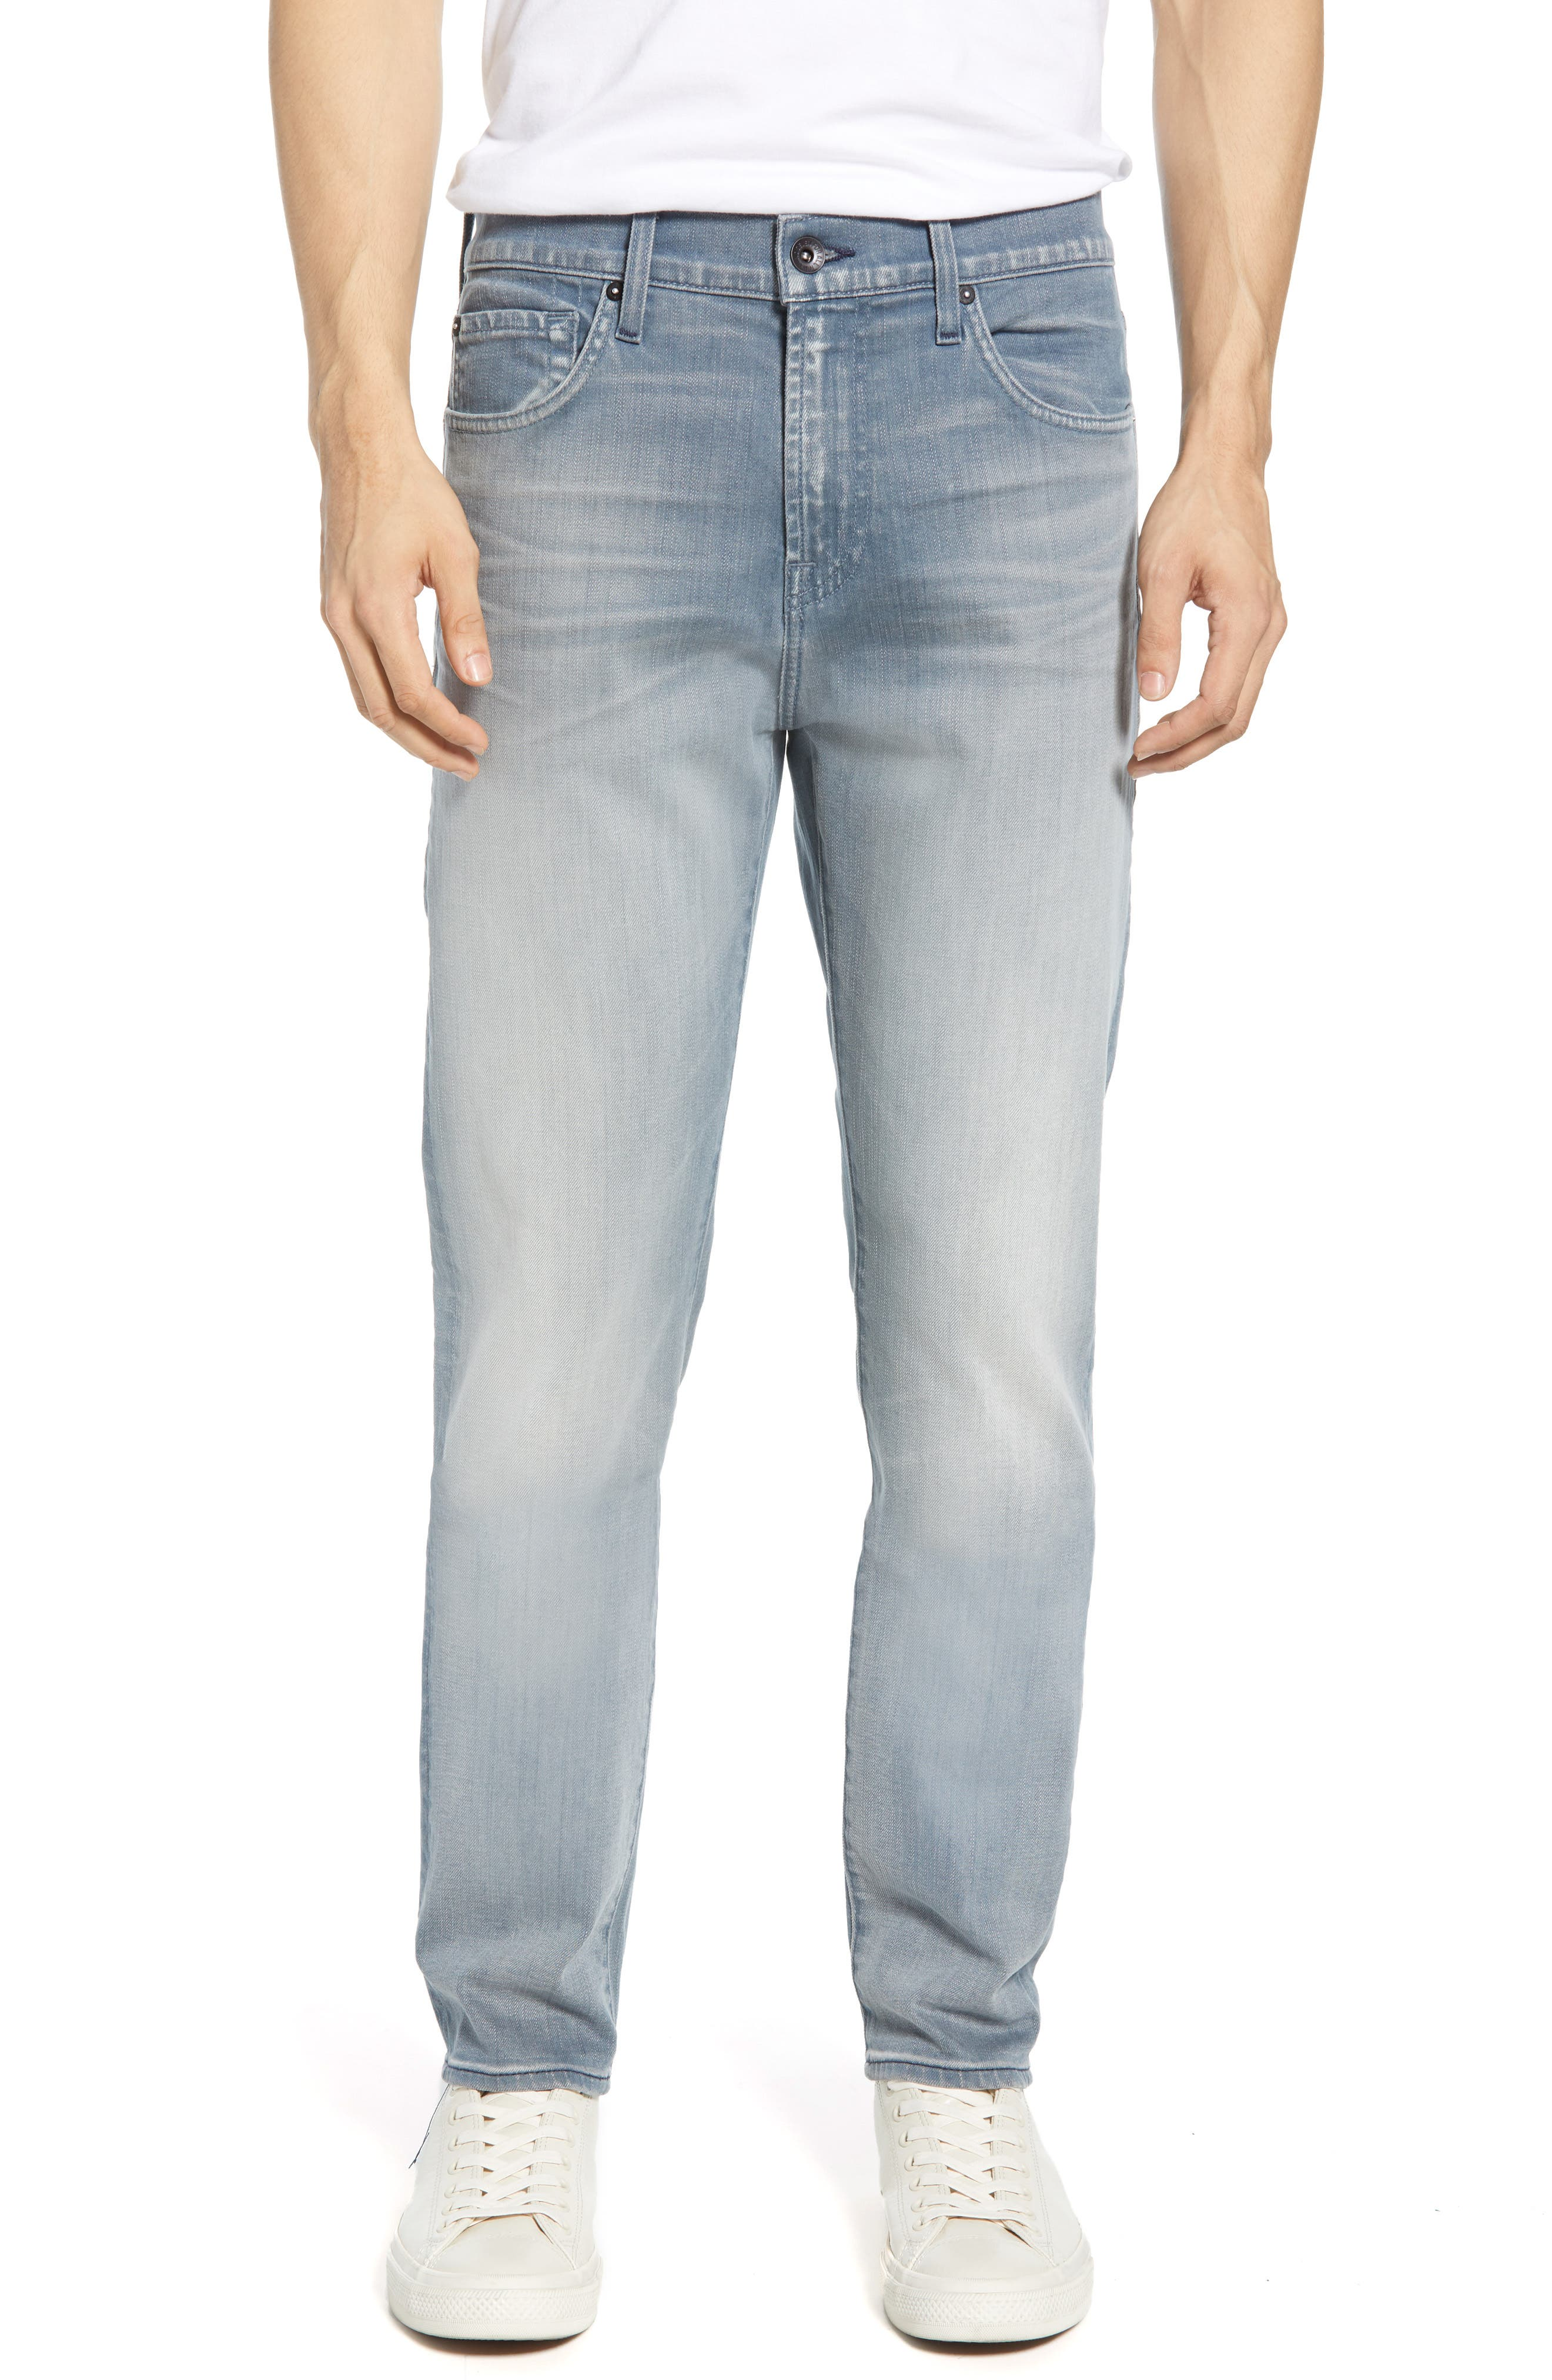 7 FOR ALL MANKIND<SUP>®</SUP>, Ryley Skinny Fit Jeans, Main thumbnail 1, color, AEGEAN